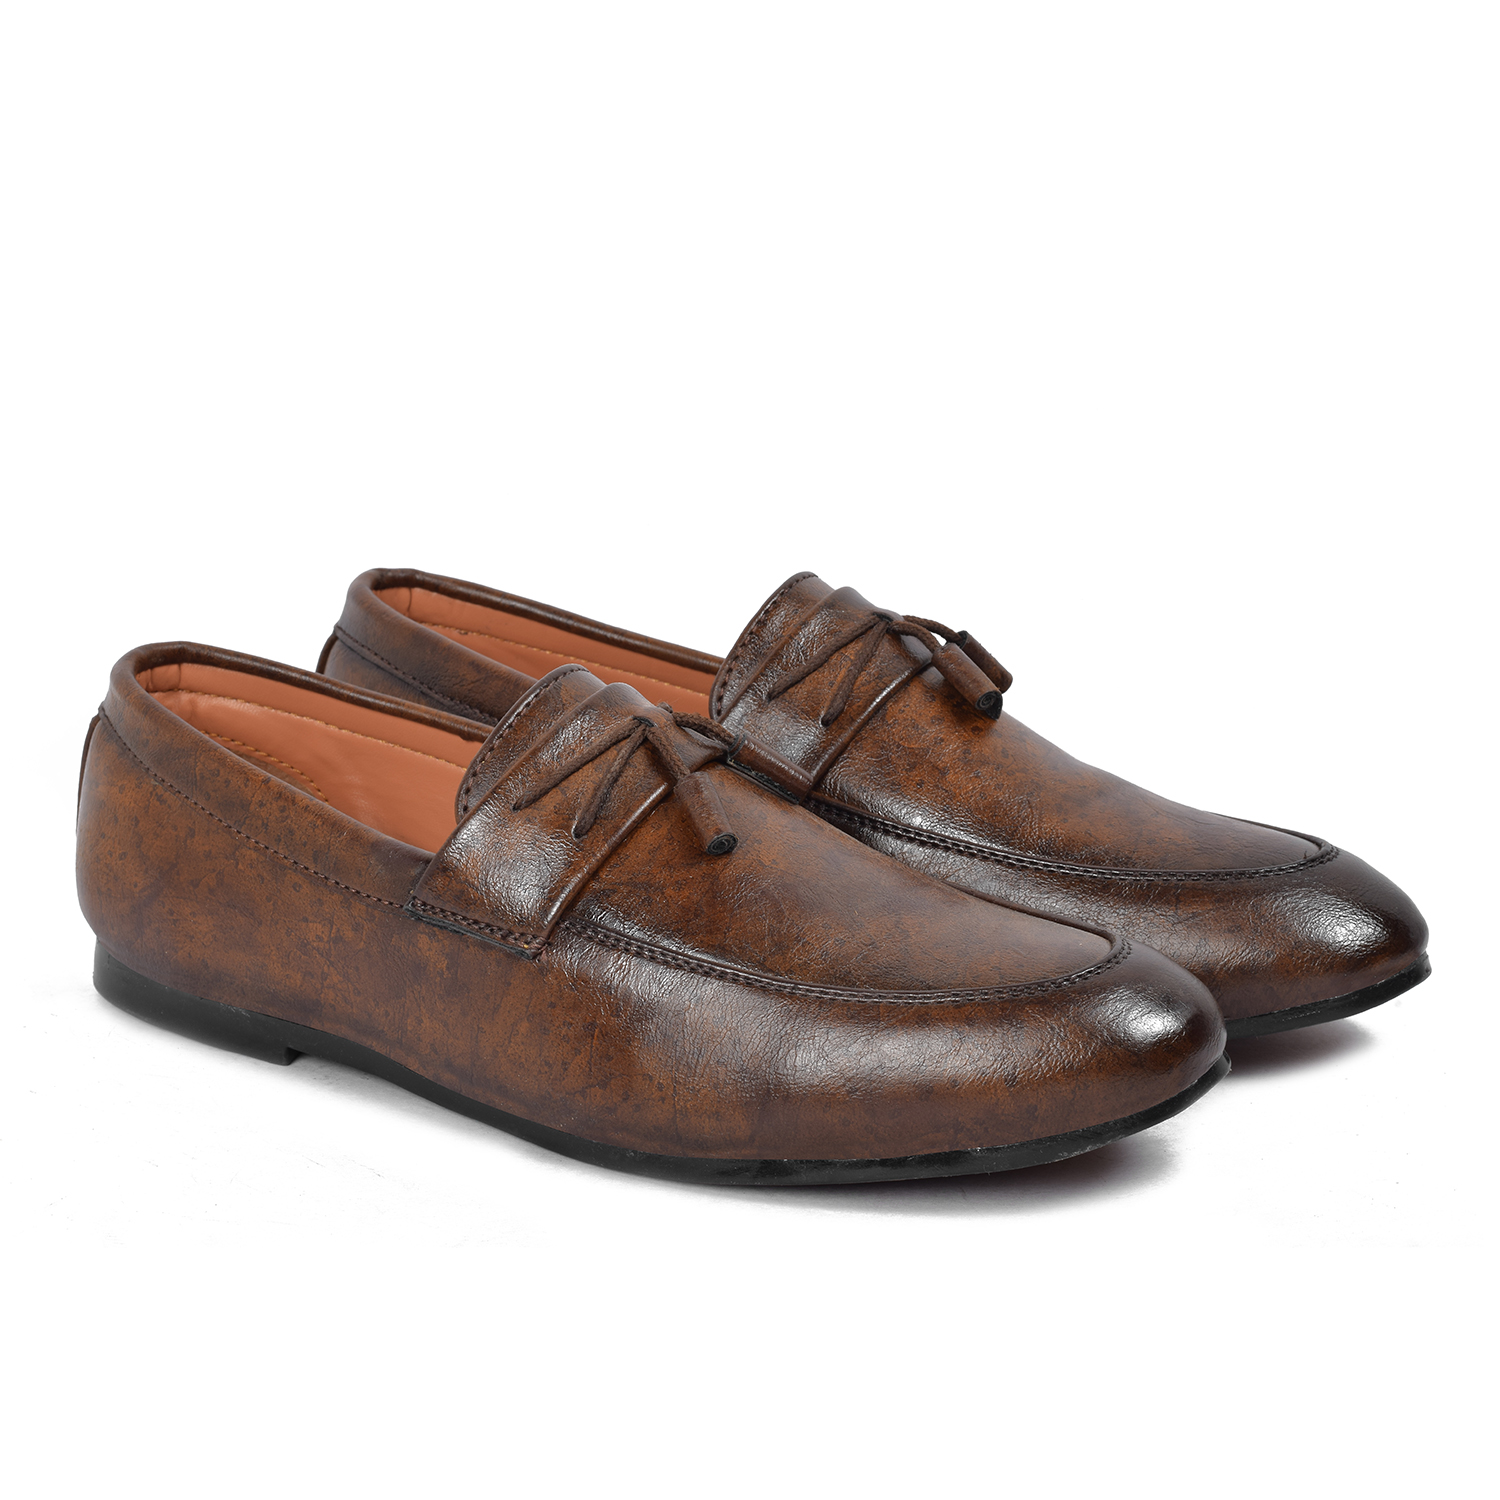 Tango Shoes Stylish Men's Loafers 1103BROWN (BROWN, 6-10, 8 PAIR)